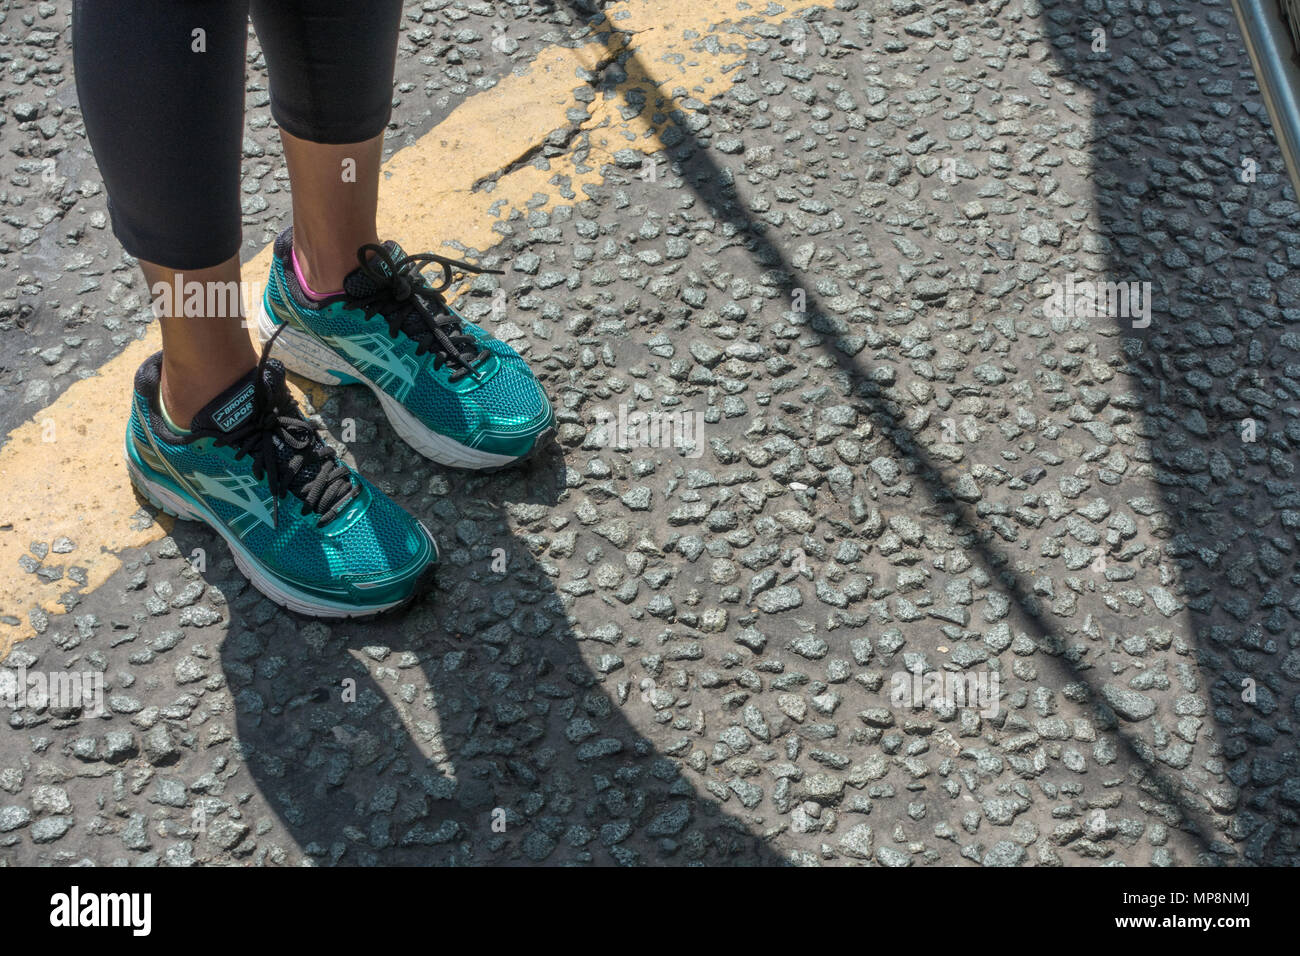 A young women wearing green trainers in preparation to run a 10K race - Stock Image